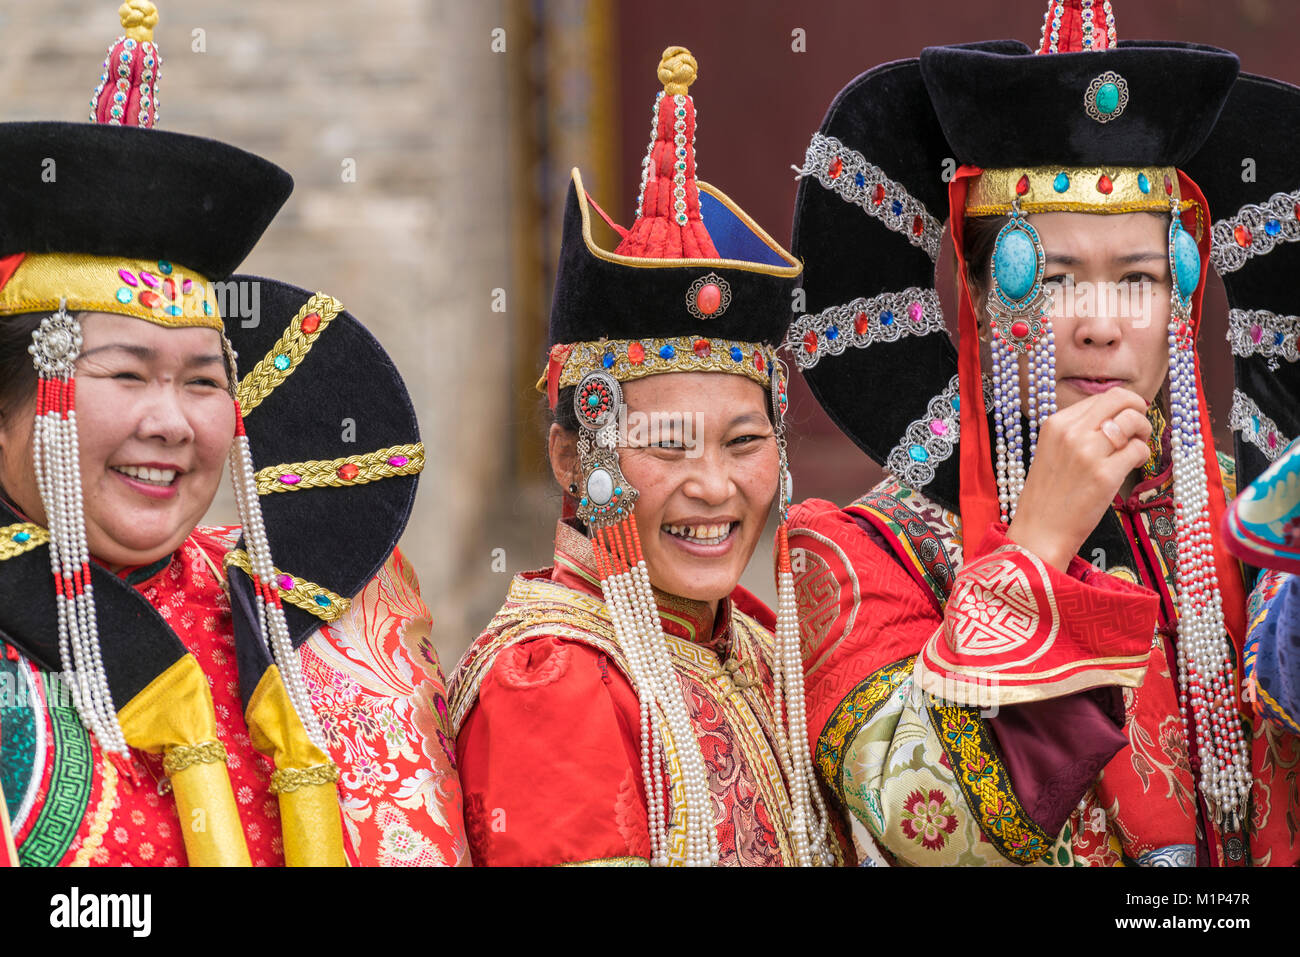 Three women wearing traditional Mongolian costumes, Harhorin, South Hangay province, Mongolia, Central Asia, Asia - Stock Image